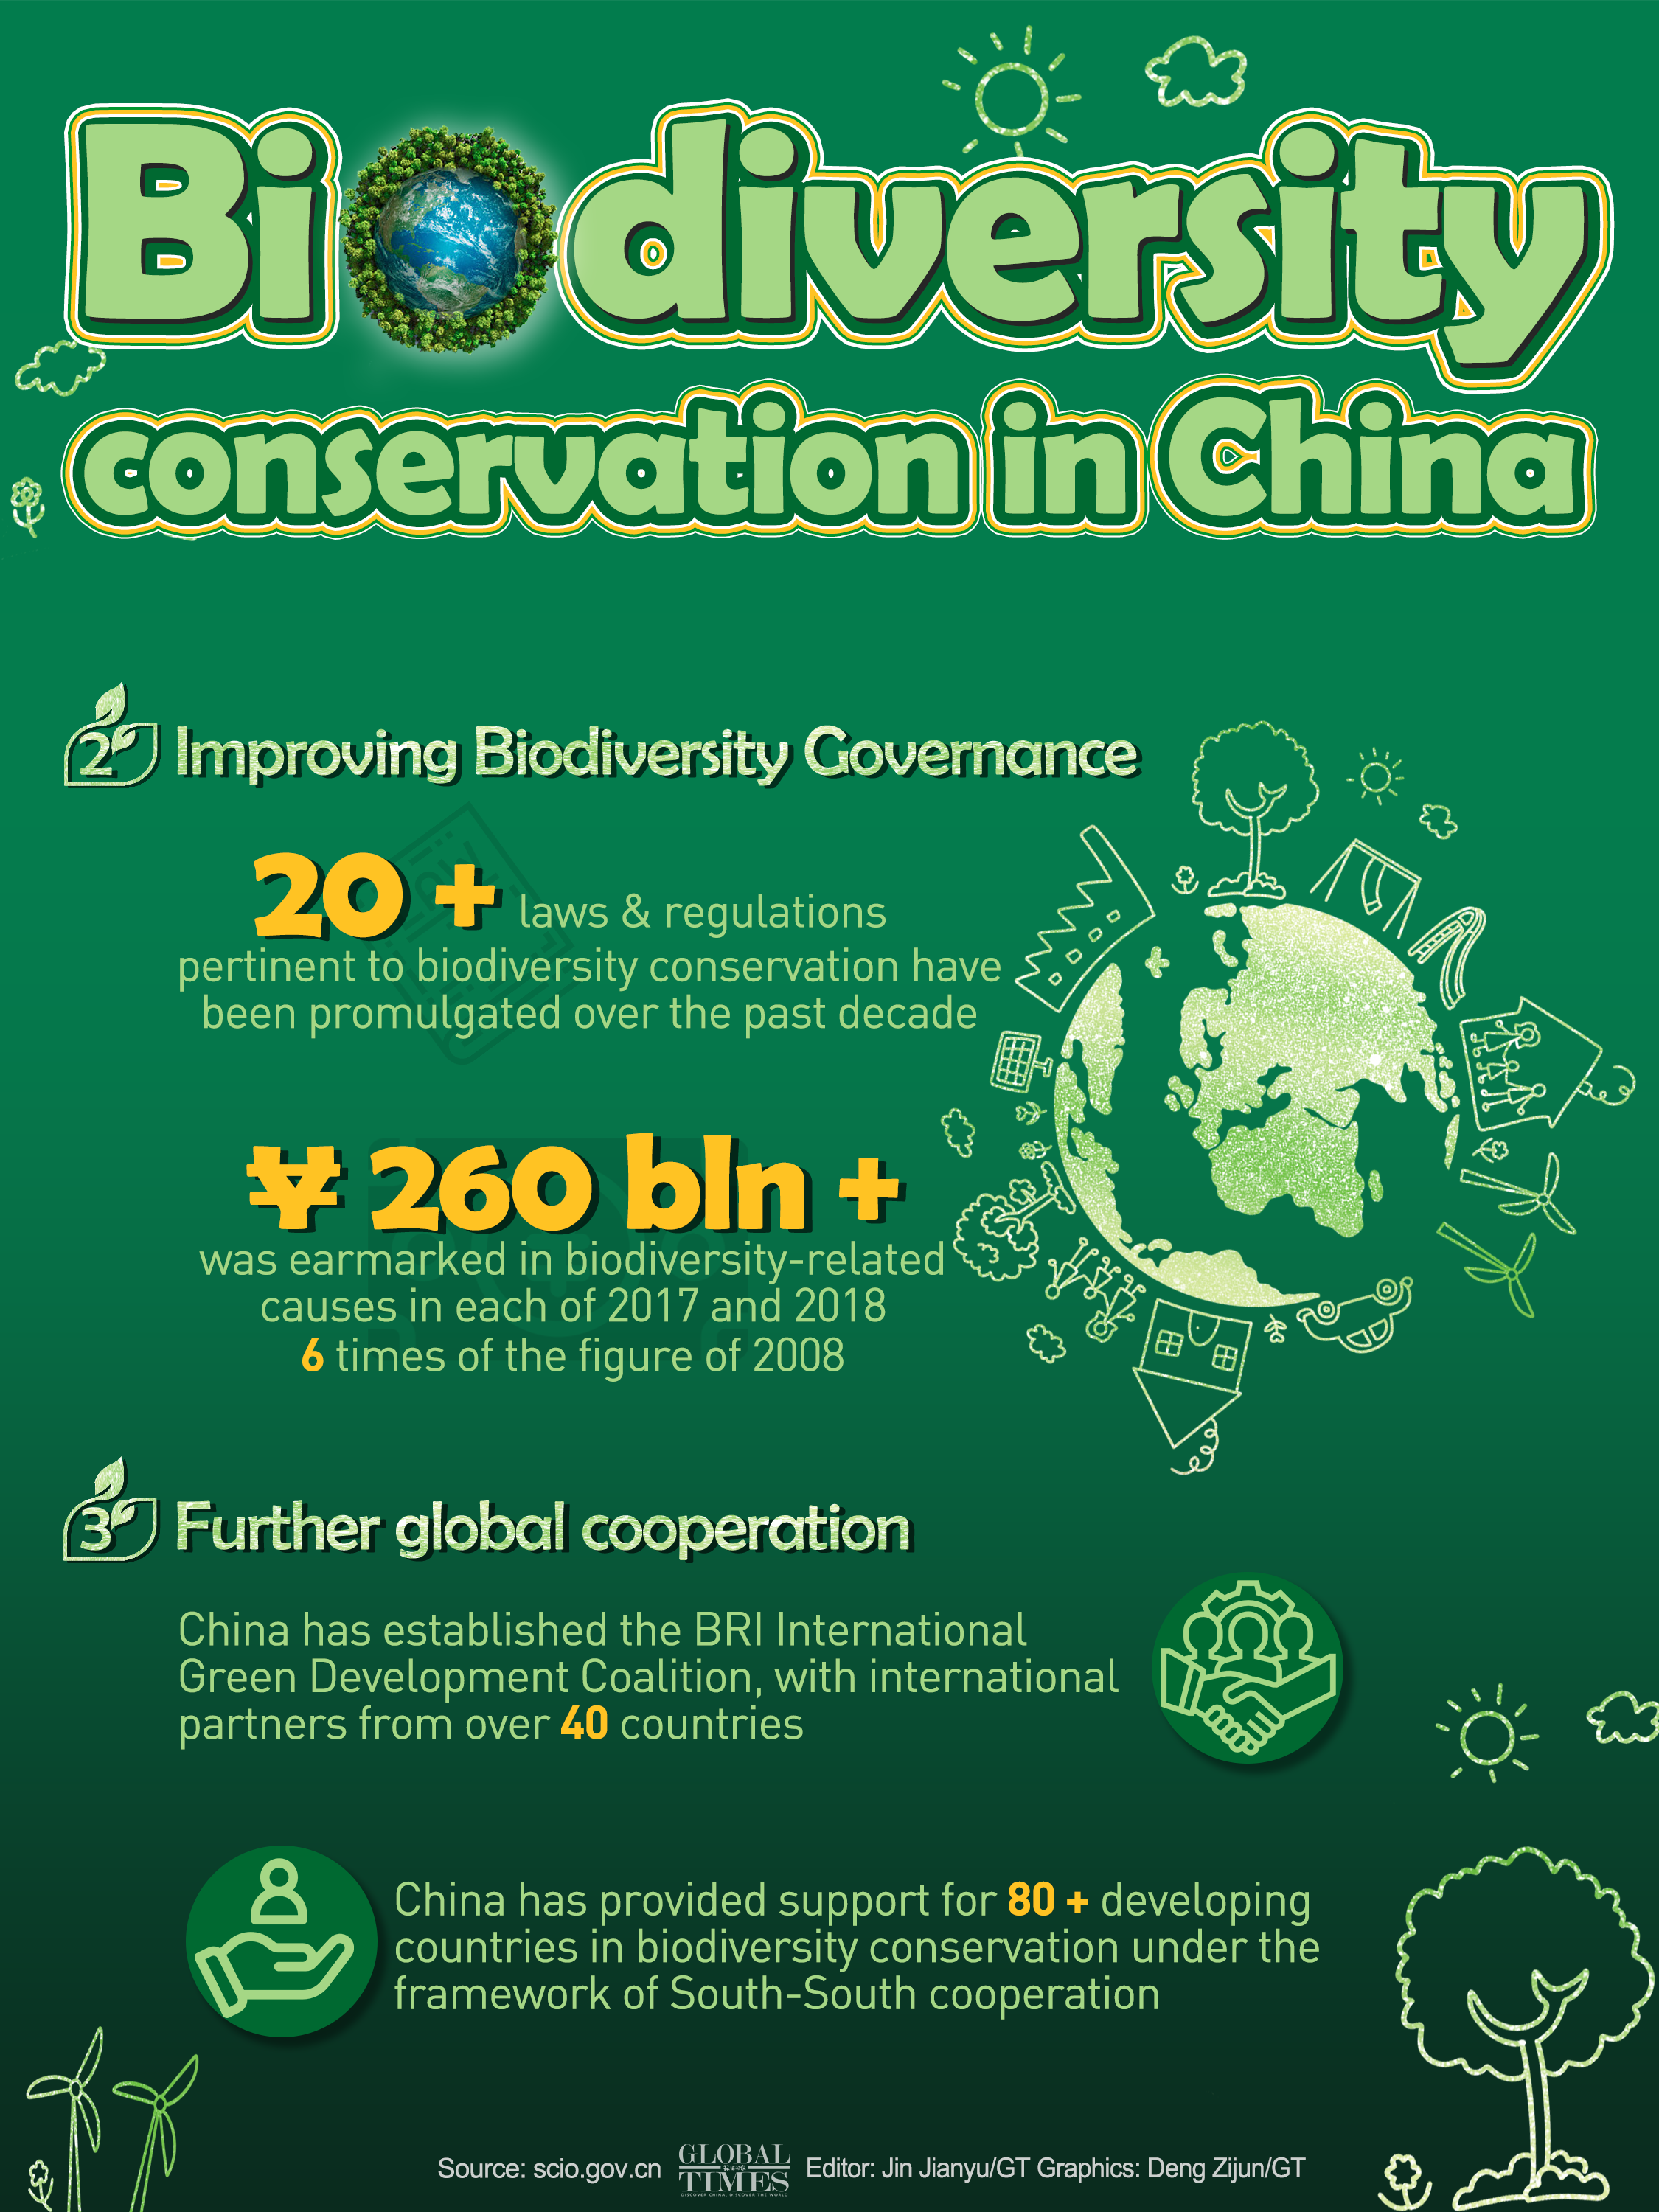 Biodiversity conservation in China. Graphic: Deng Zijun/GT